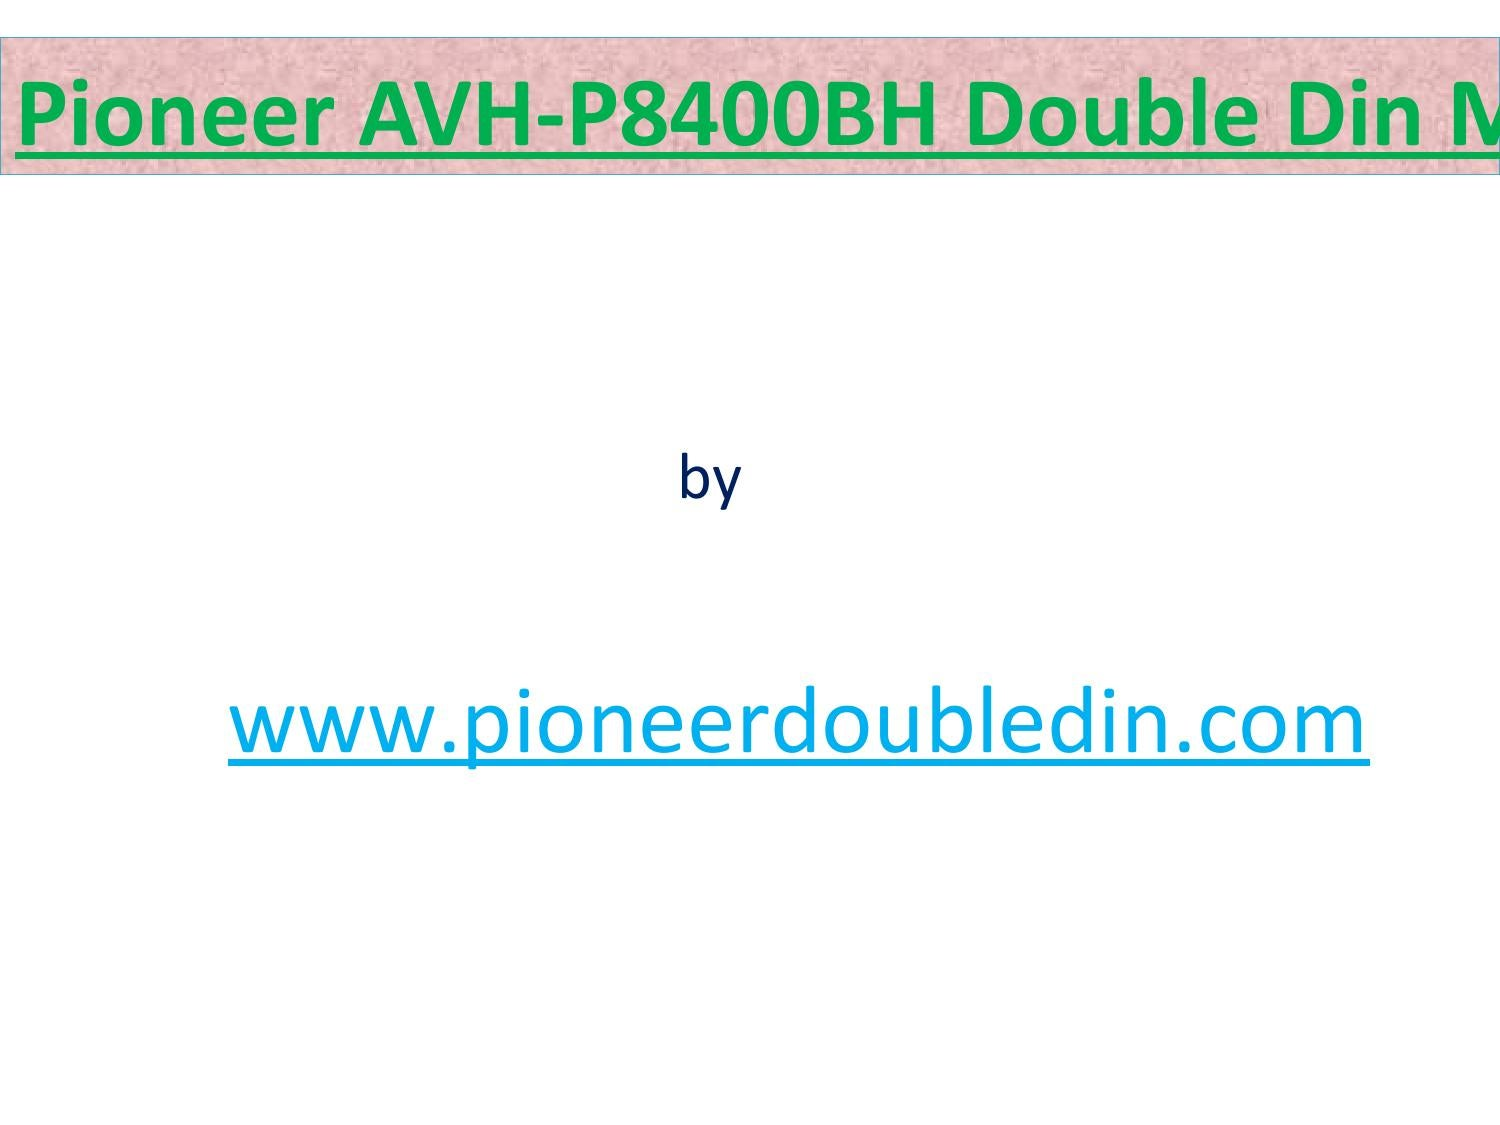 hight resolution of review pioneer avh p8400bh double din car stereo with built in bluetooth by carrie issuu